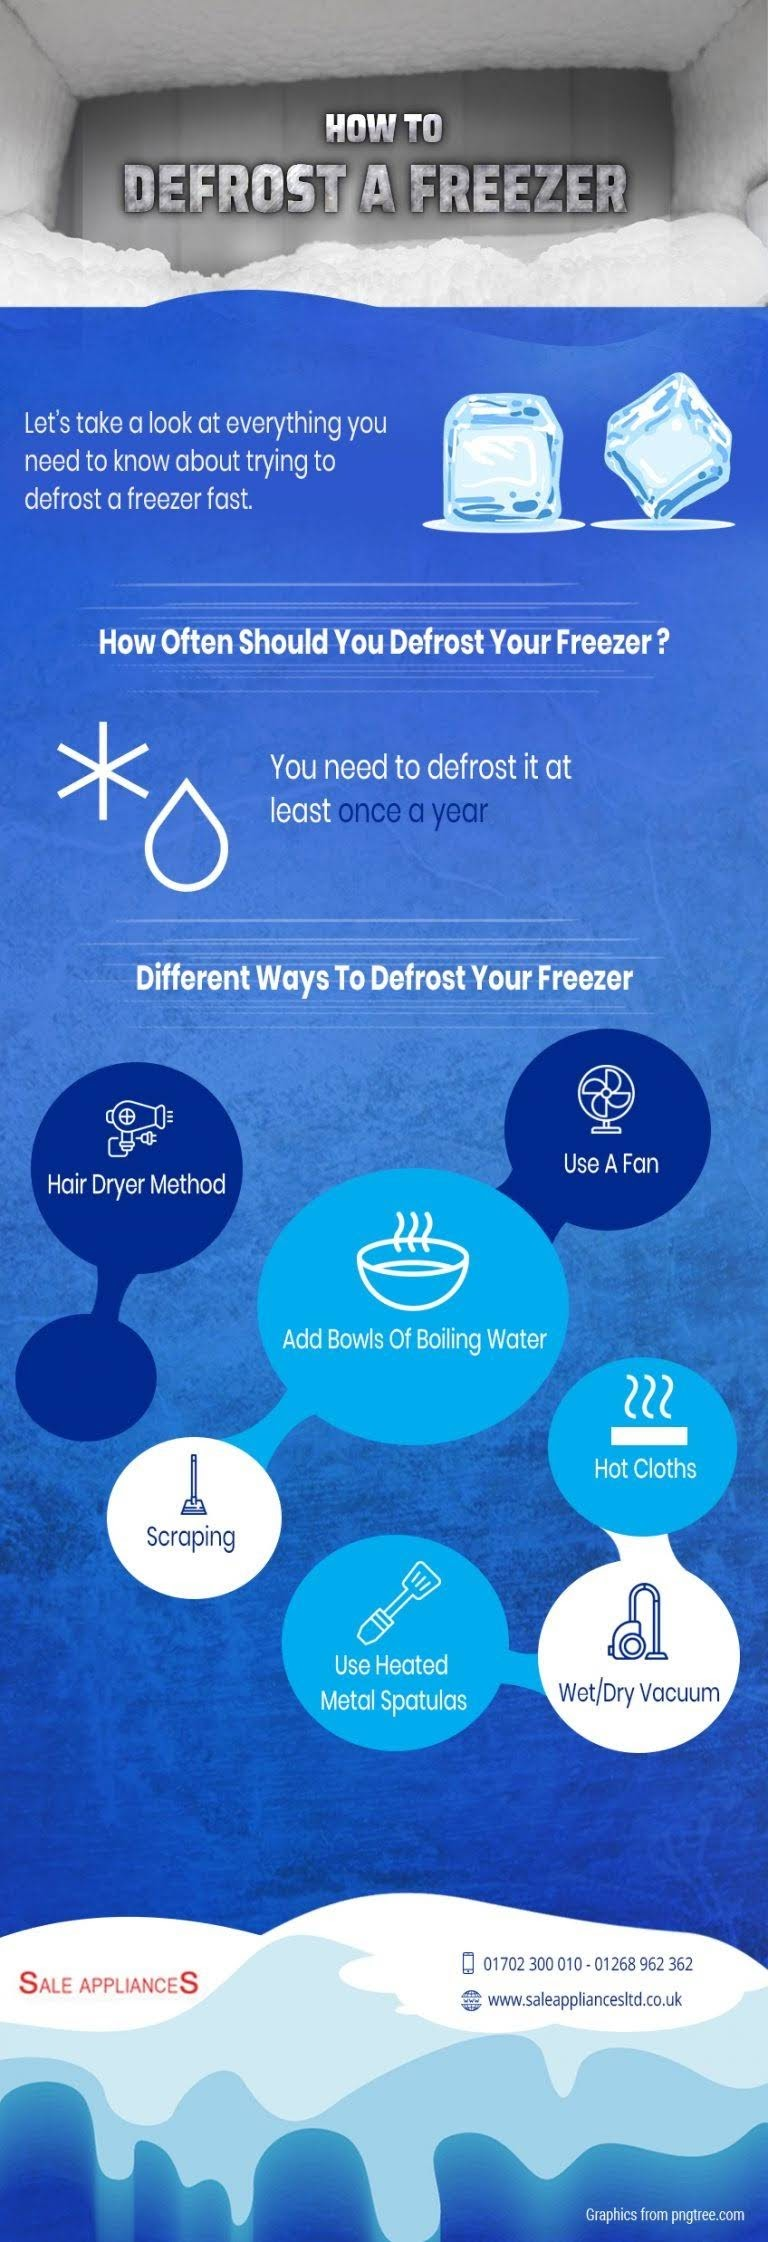 How to Defrost a Freezer? #infographic